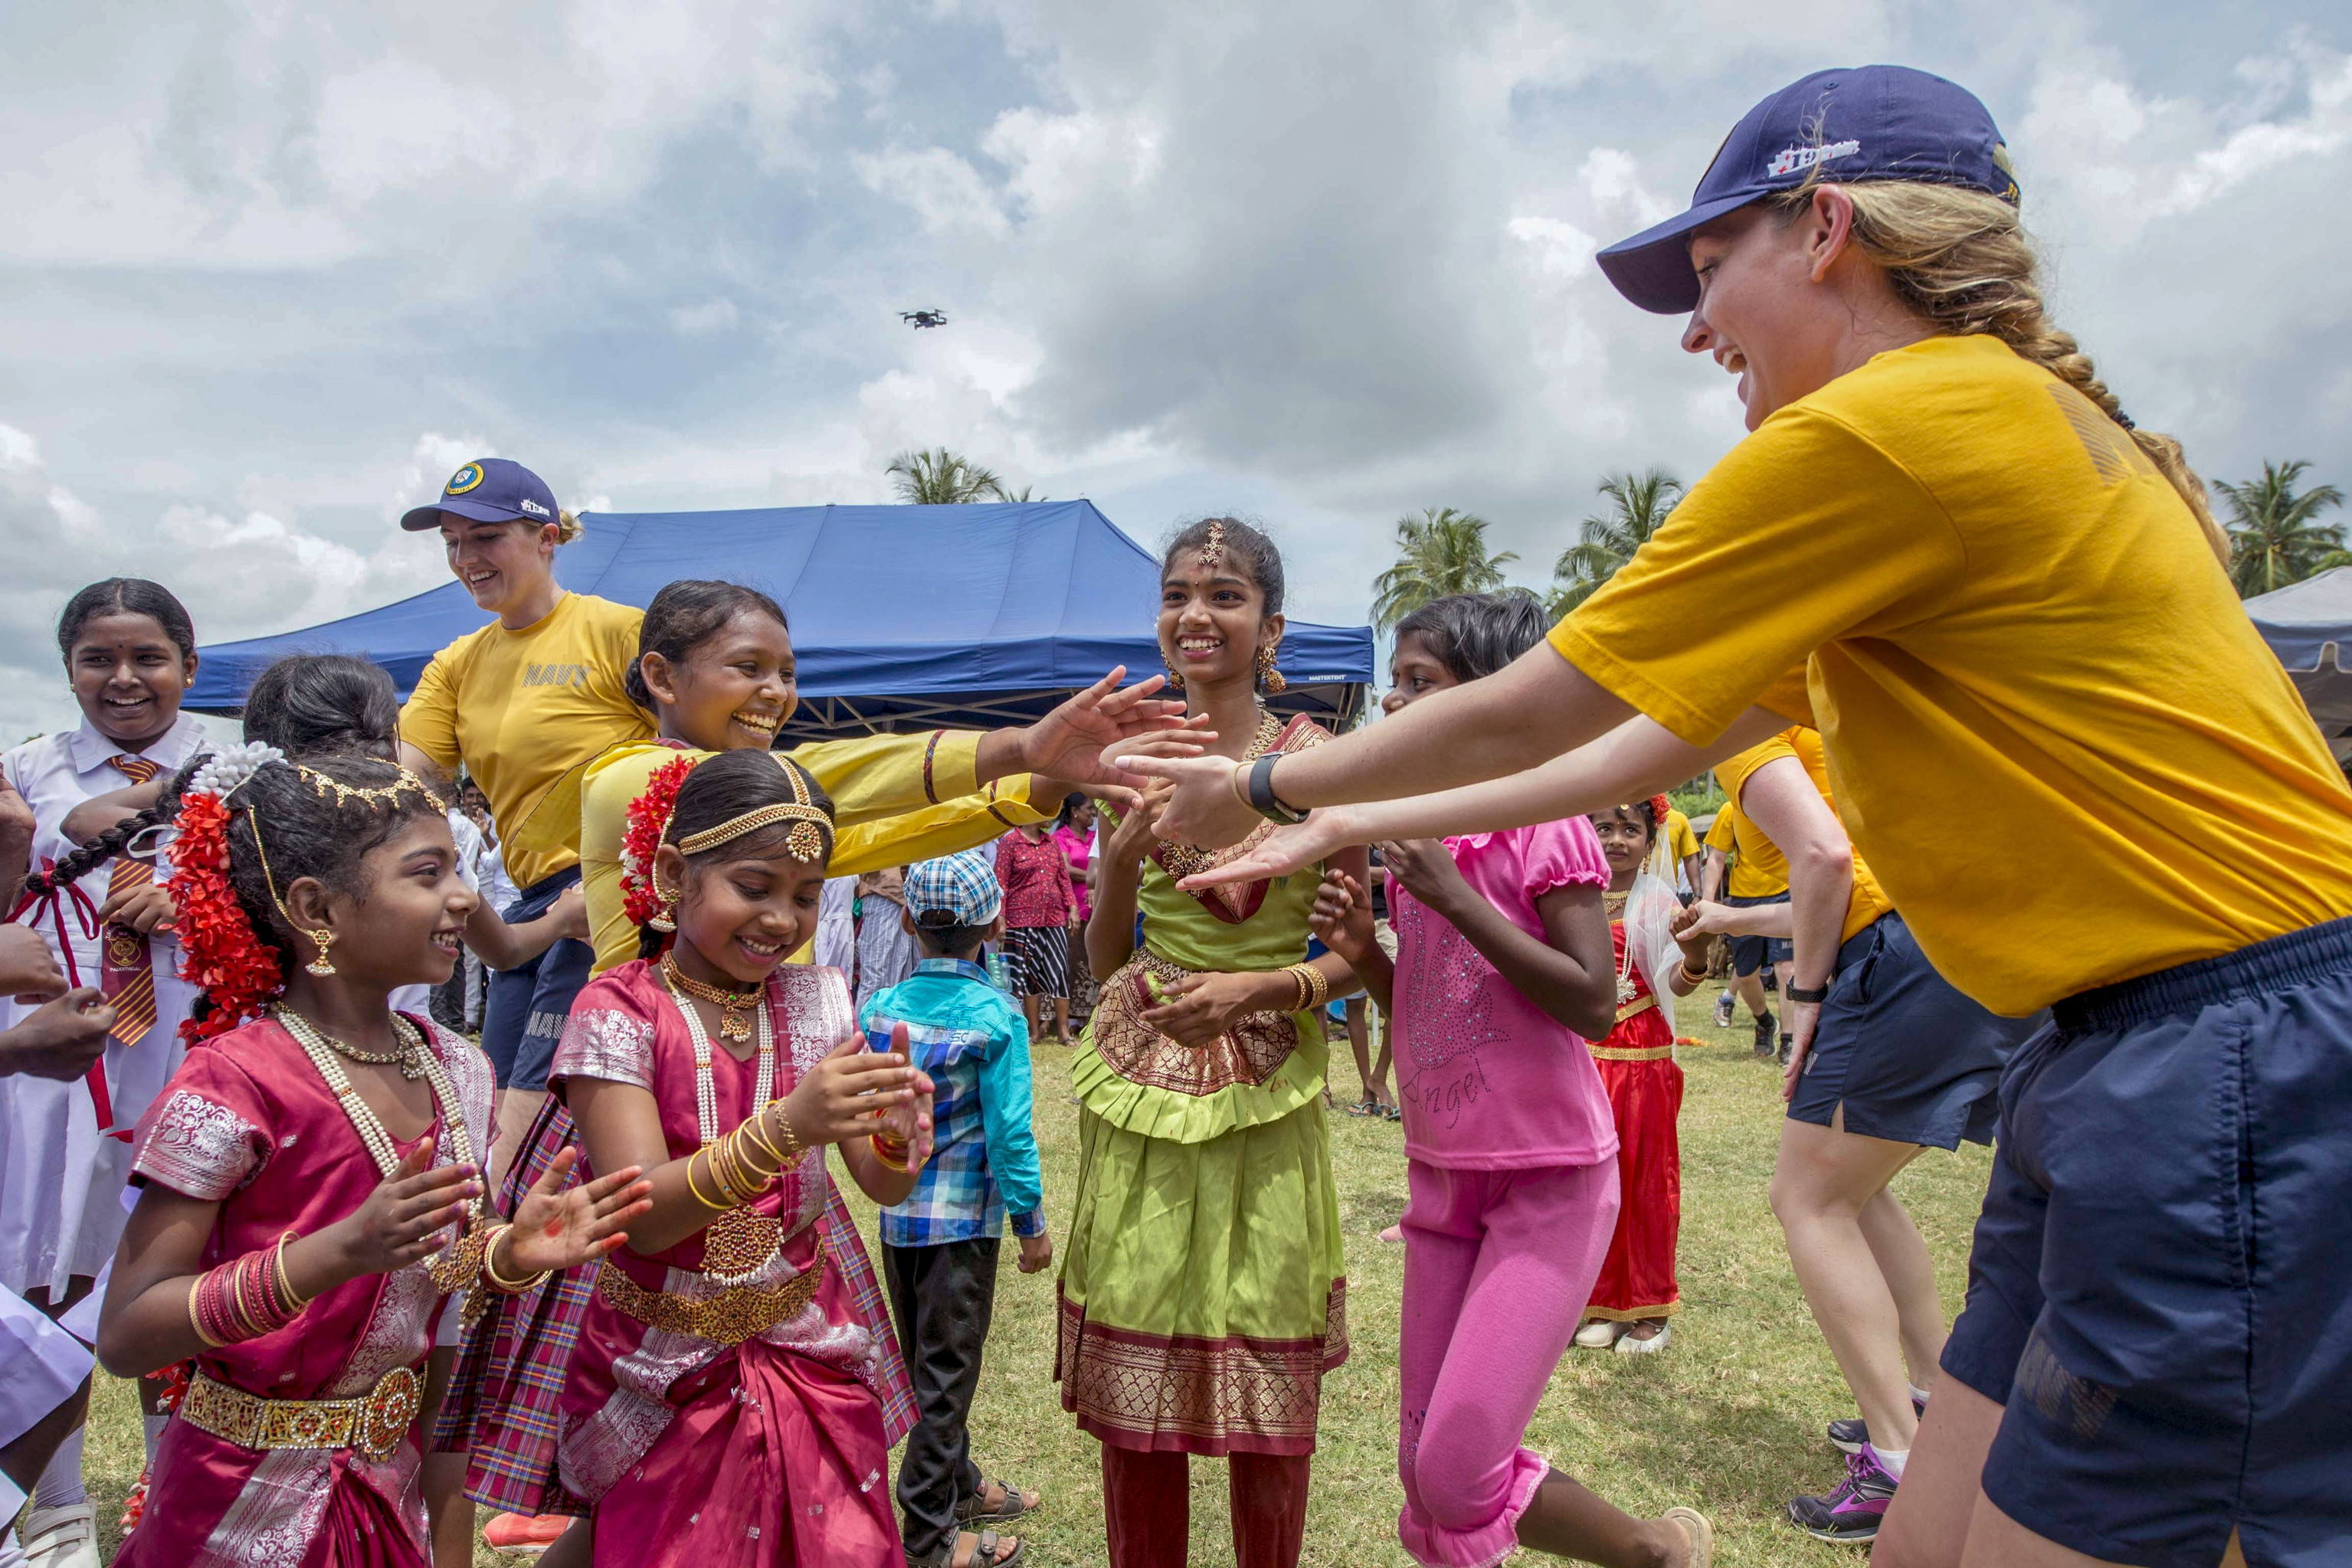 180428-N-MD713-0028  TRINCOMOLEE, Sri Lanka (April 28, 2018) Sailors assigned to Military Sealift Command hospital ship USNS Mercy (T-AH 19) dance with students from T/mu/Paddithidal Maha Vidyalayam School during a U.S. Pacific Fleet Band performance in support of Pacific Partnership 2018 (PP18).  PP18's mission is to work collectively with host and partner nations to enhance regional interoperability and disaster response capabilities, increase stability and security in the region, and foster new and enduring friendships across the Indo-Pacific Region. Pacific Partnership, now in its 13th iteration, is the largest annual multinational humanitarian assistance and disaster relief preparedness mission conducted in the Indo-Pacific. (U.S. Navy photo by Mass Communication Specialist 3rd Class Cameron Pinske/Released)